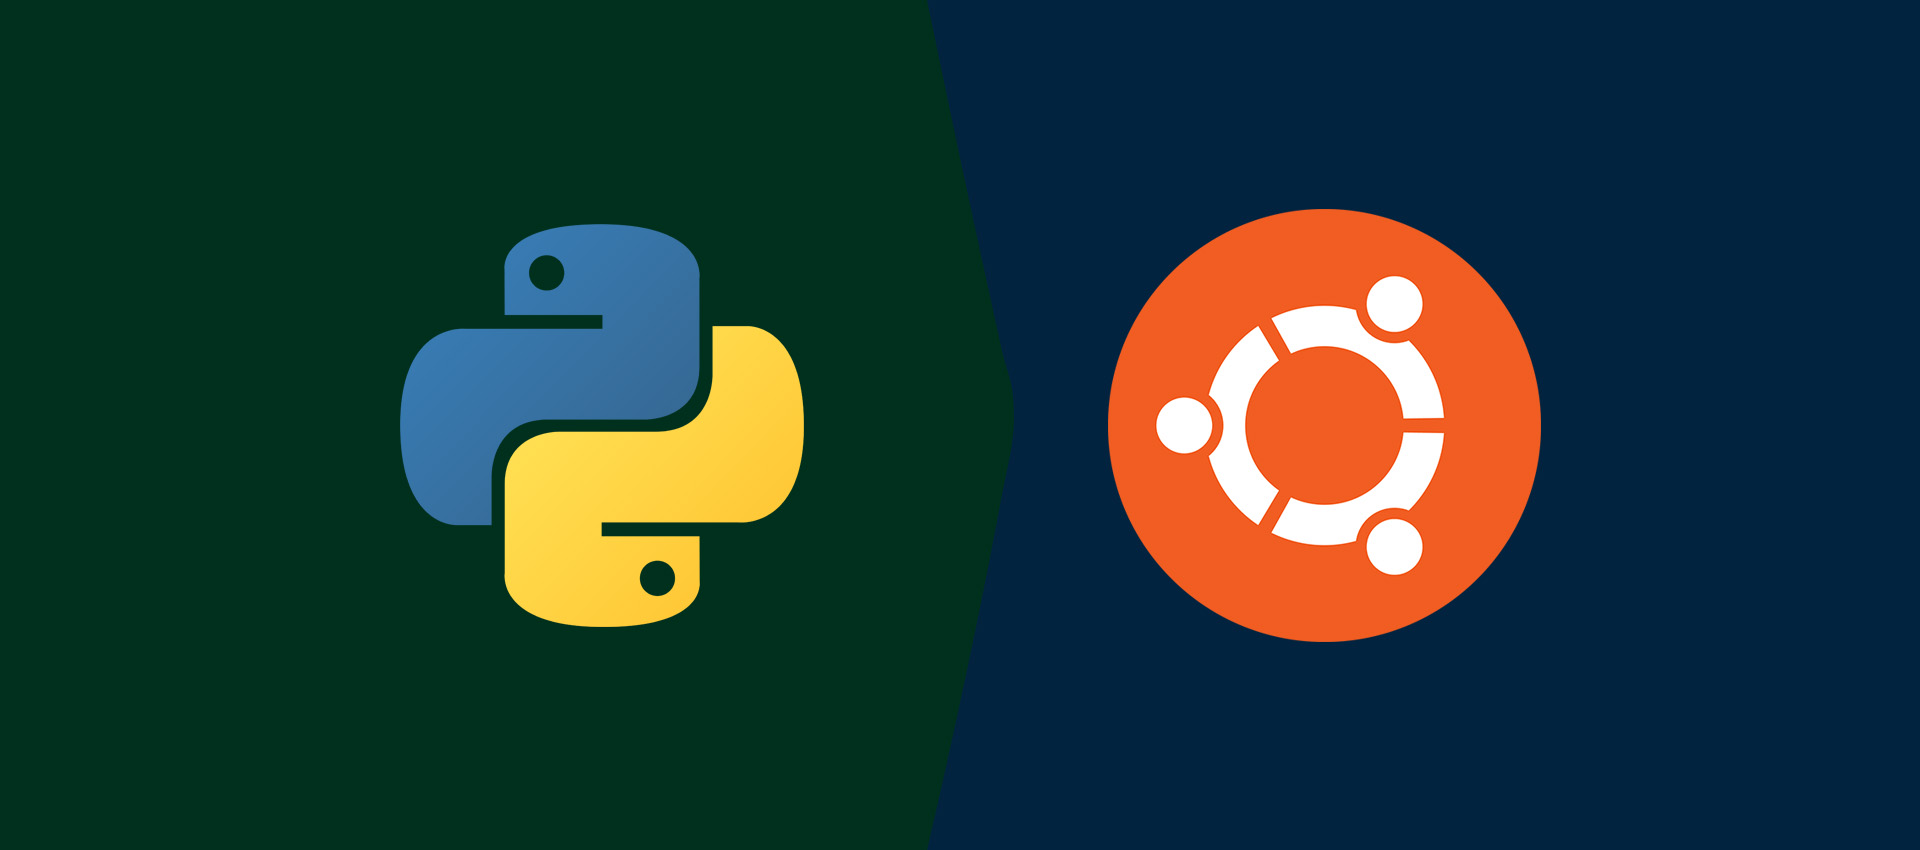 How To Install Python 3.9 On Ubuntu 20.04 LTS